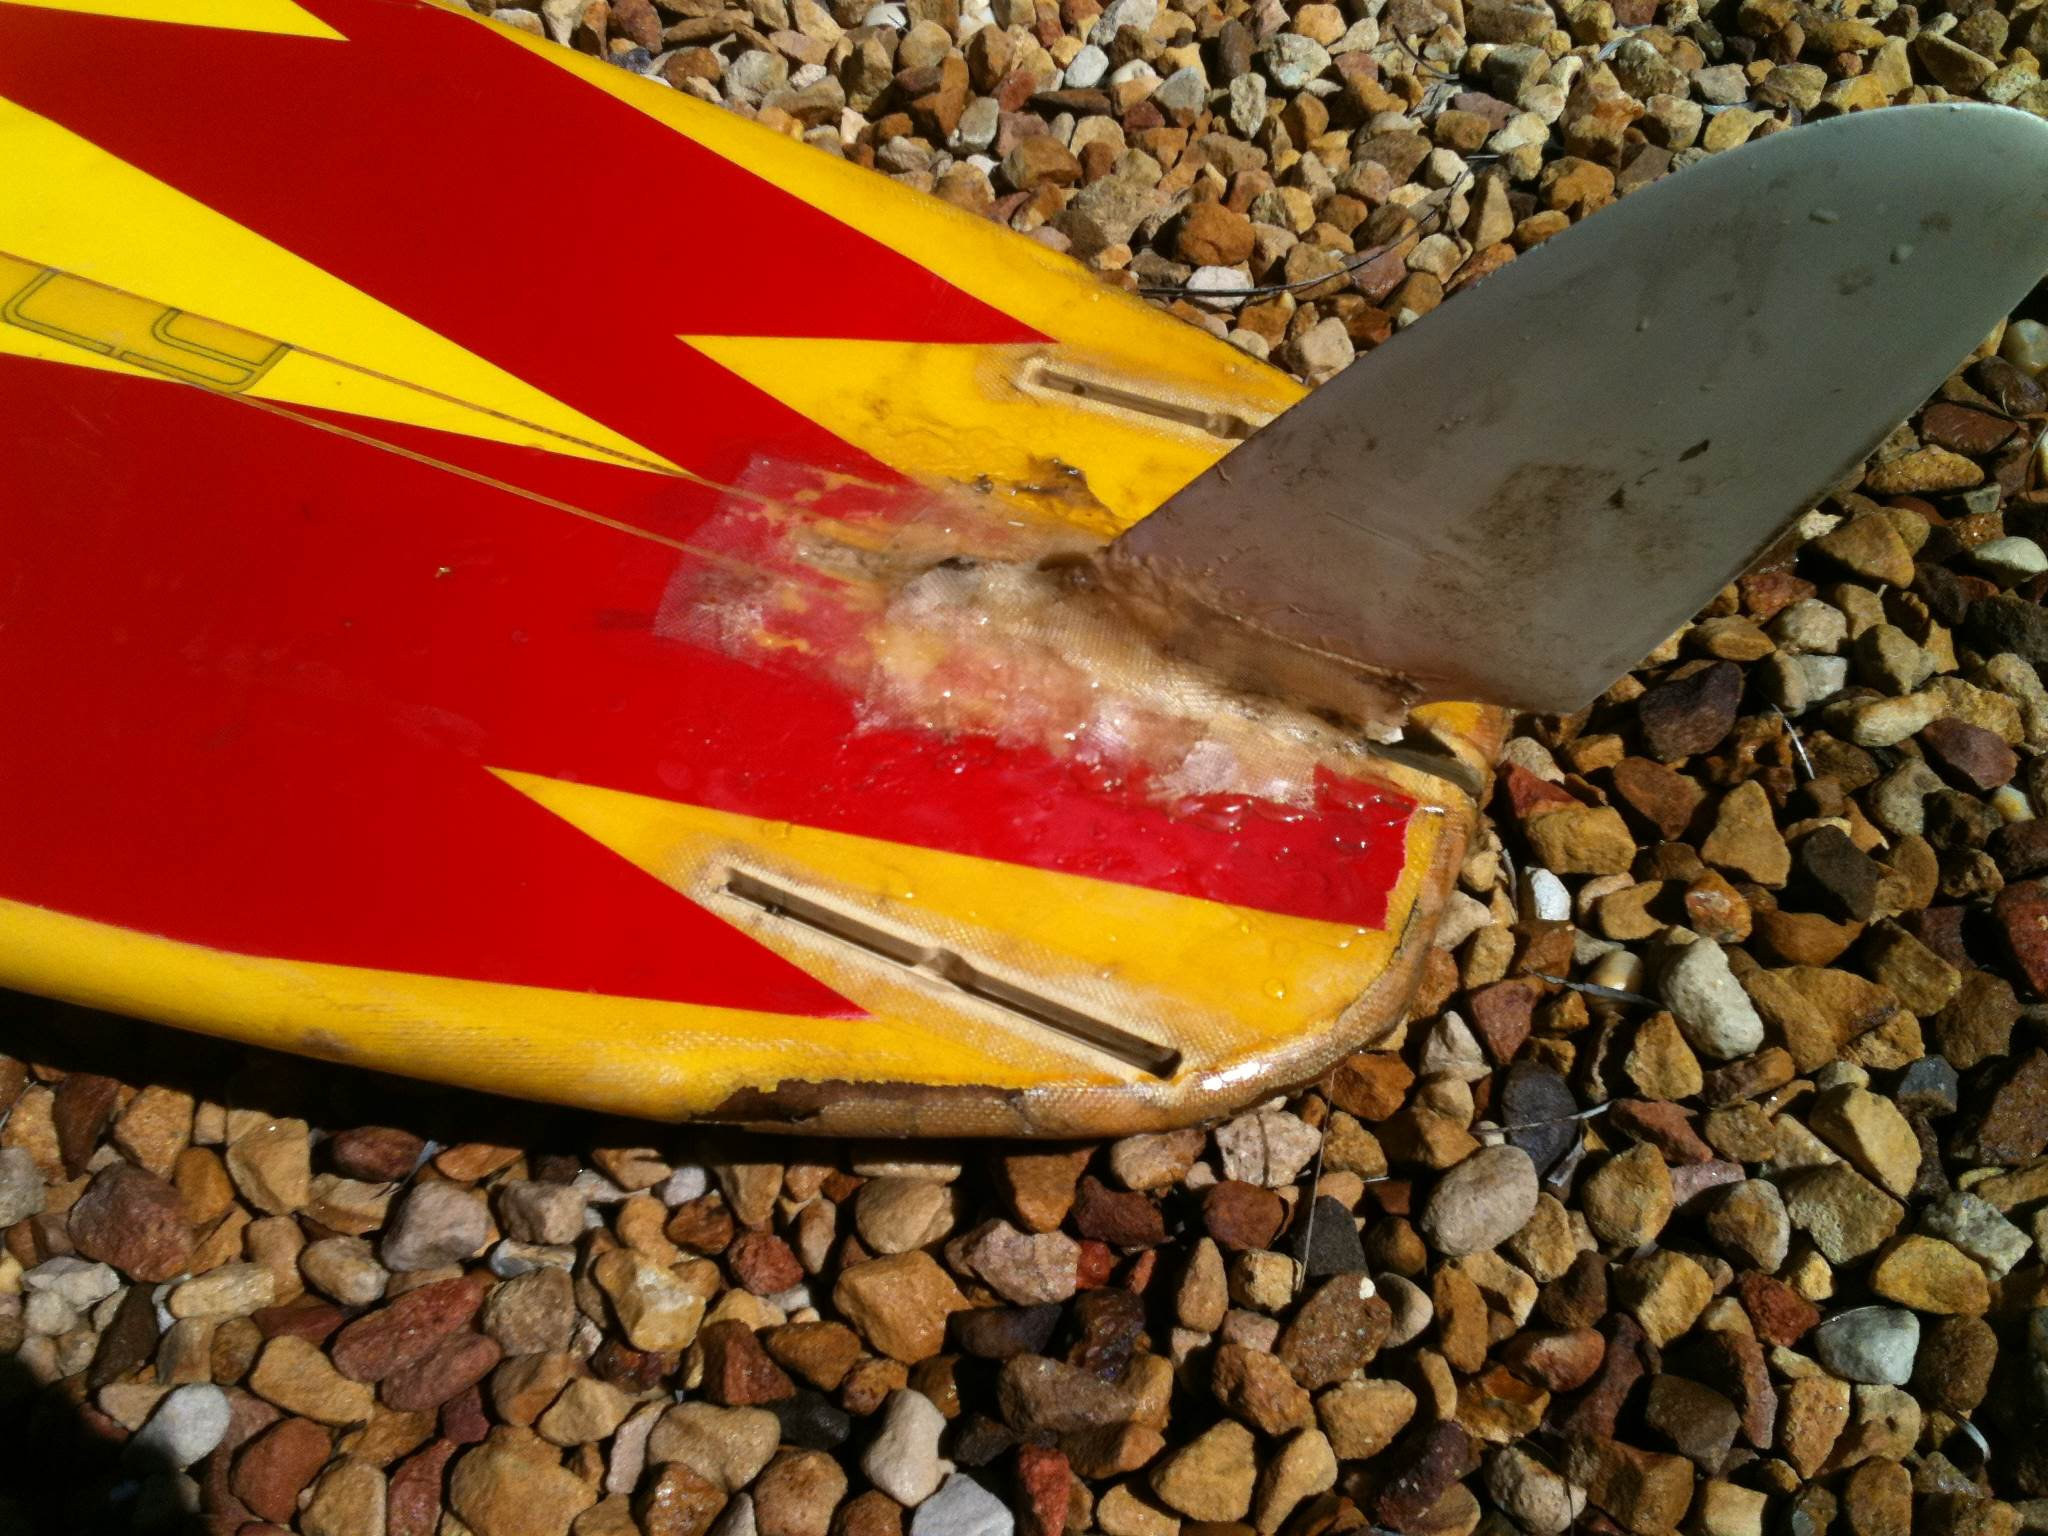 Condition red surfboards images - don omar ayer la vi hd wallpaper